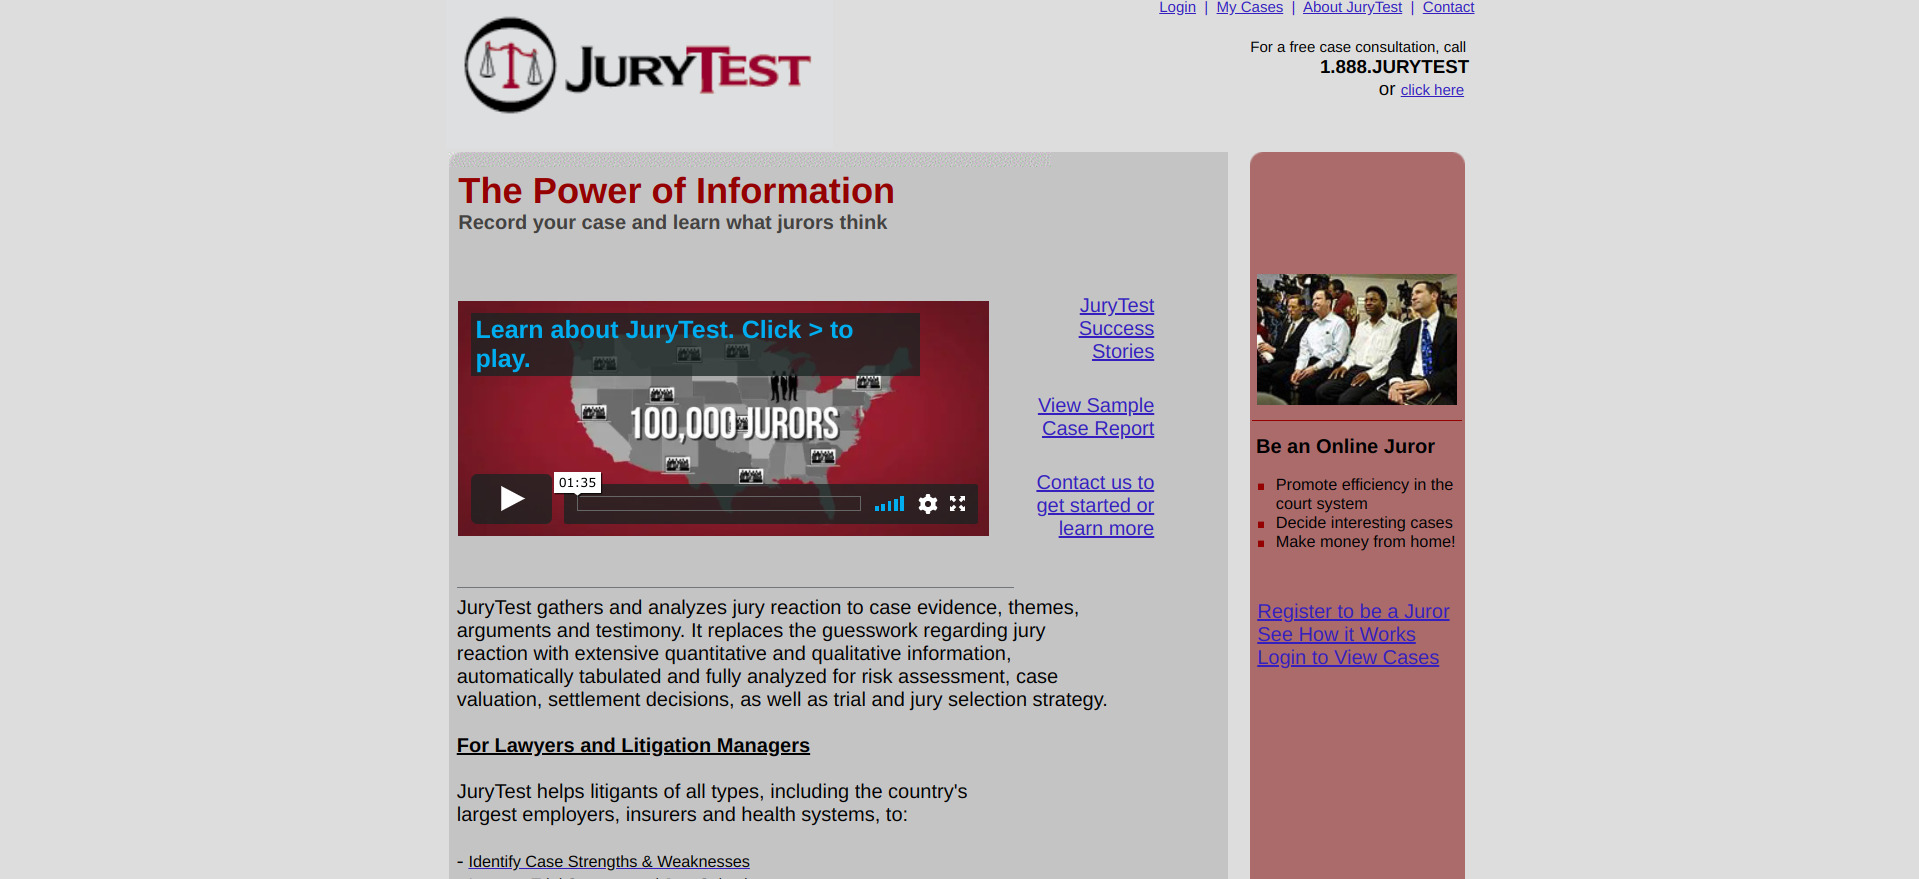 Is JuryTest Networks a Scam or Legit